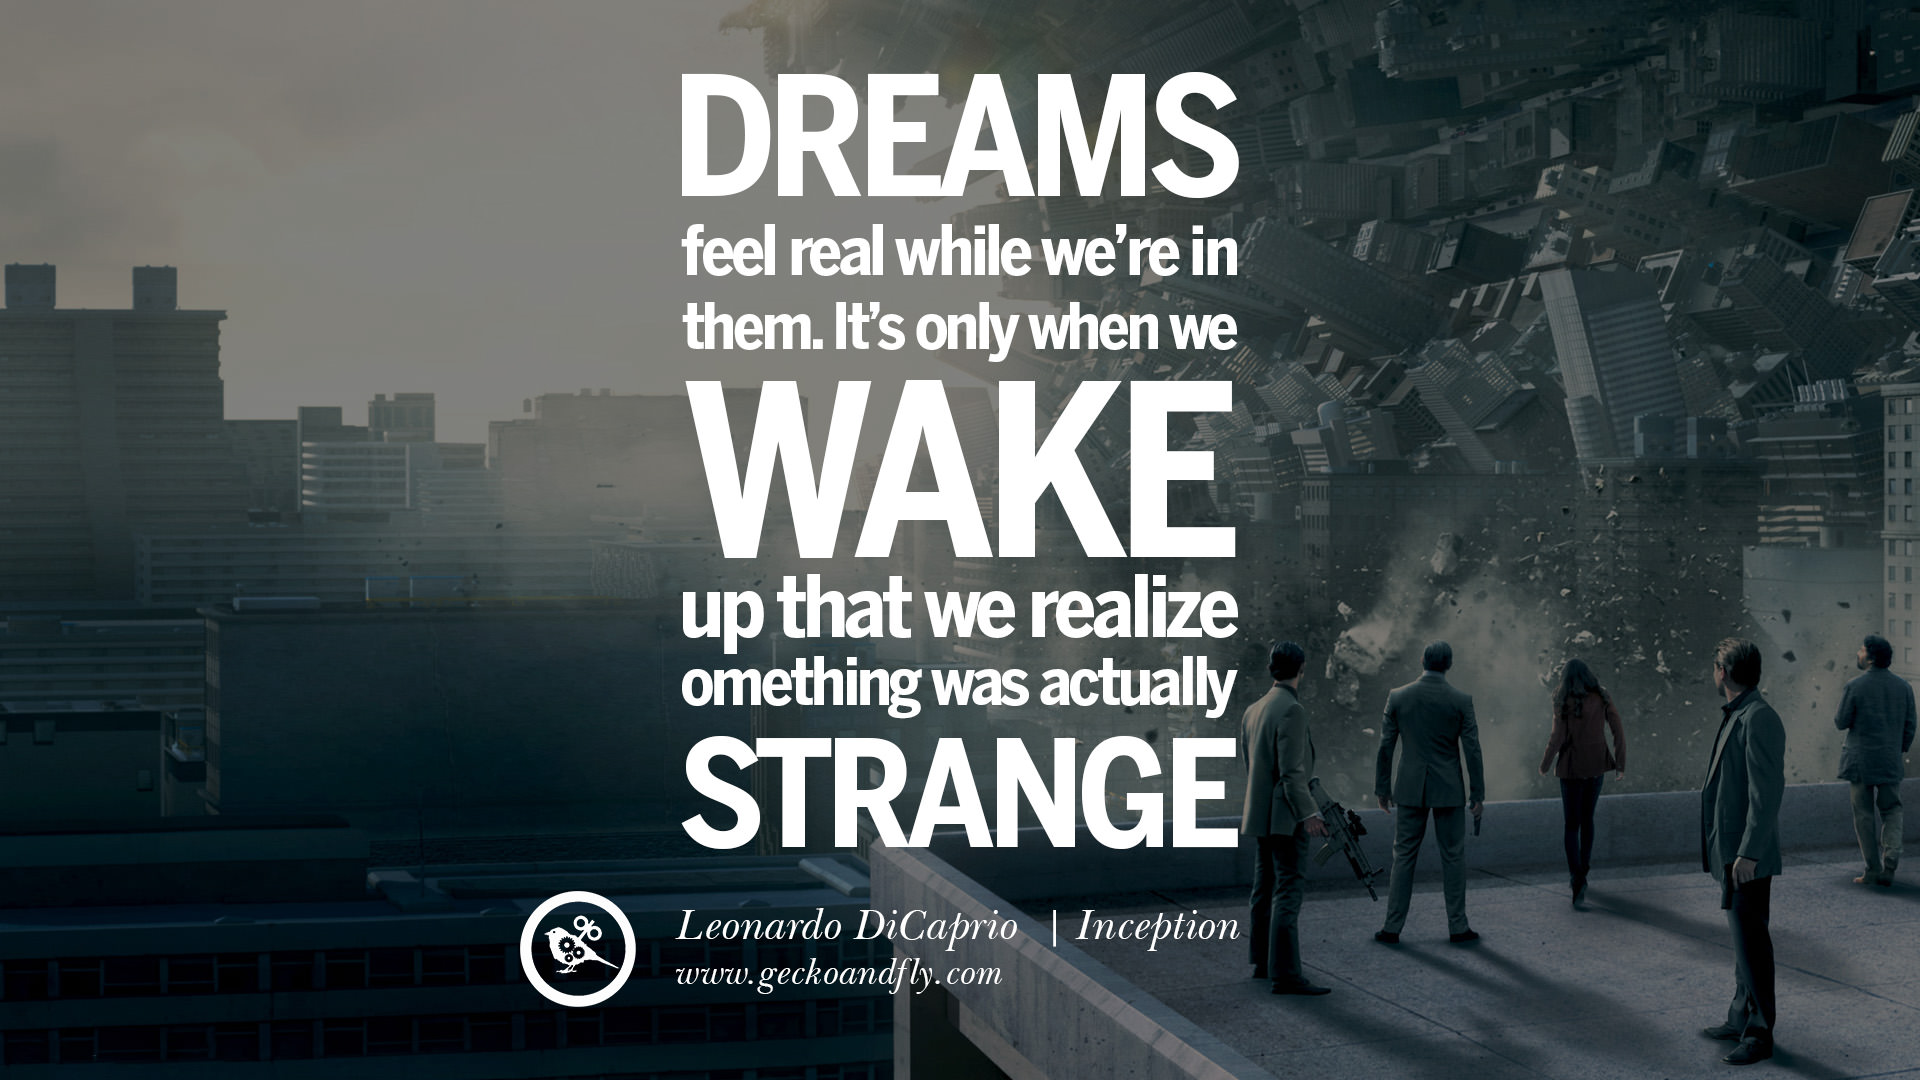 Great Gatsby Quote Wallpaper Inspiring Movie Quotes Tumblr Www Pixshark Com Images